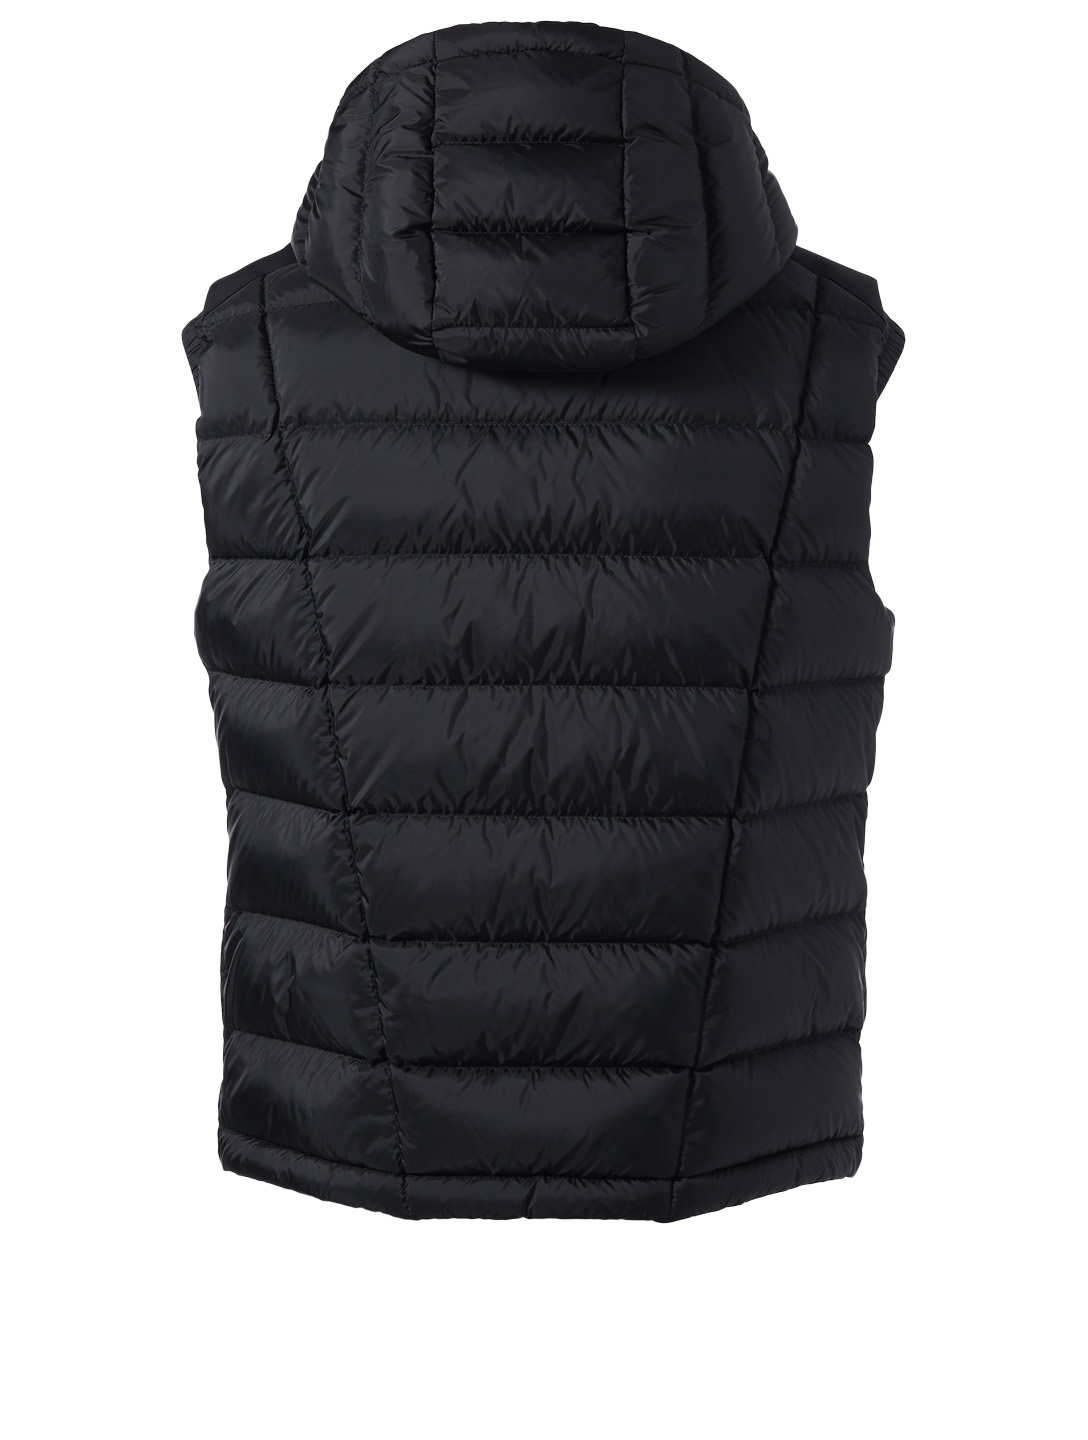 MONCLER GRENOBLE Rossiniere Down Puffer Vest Men's Black